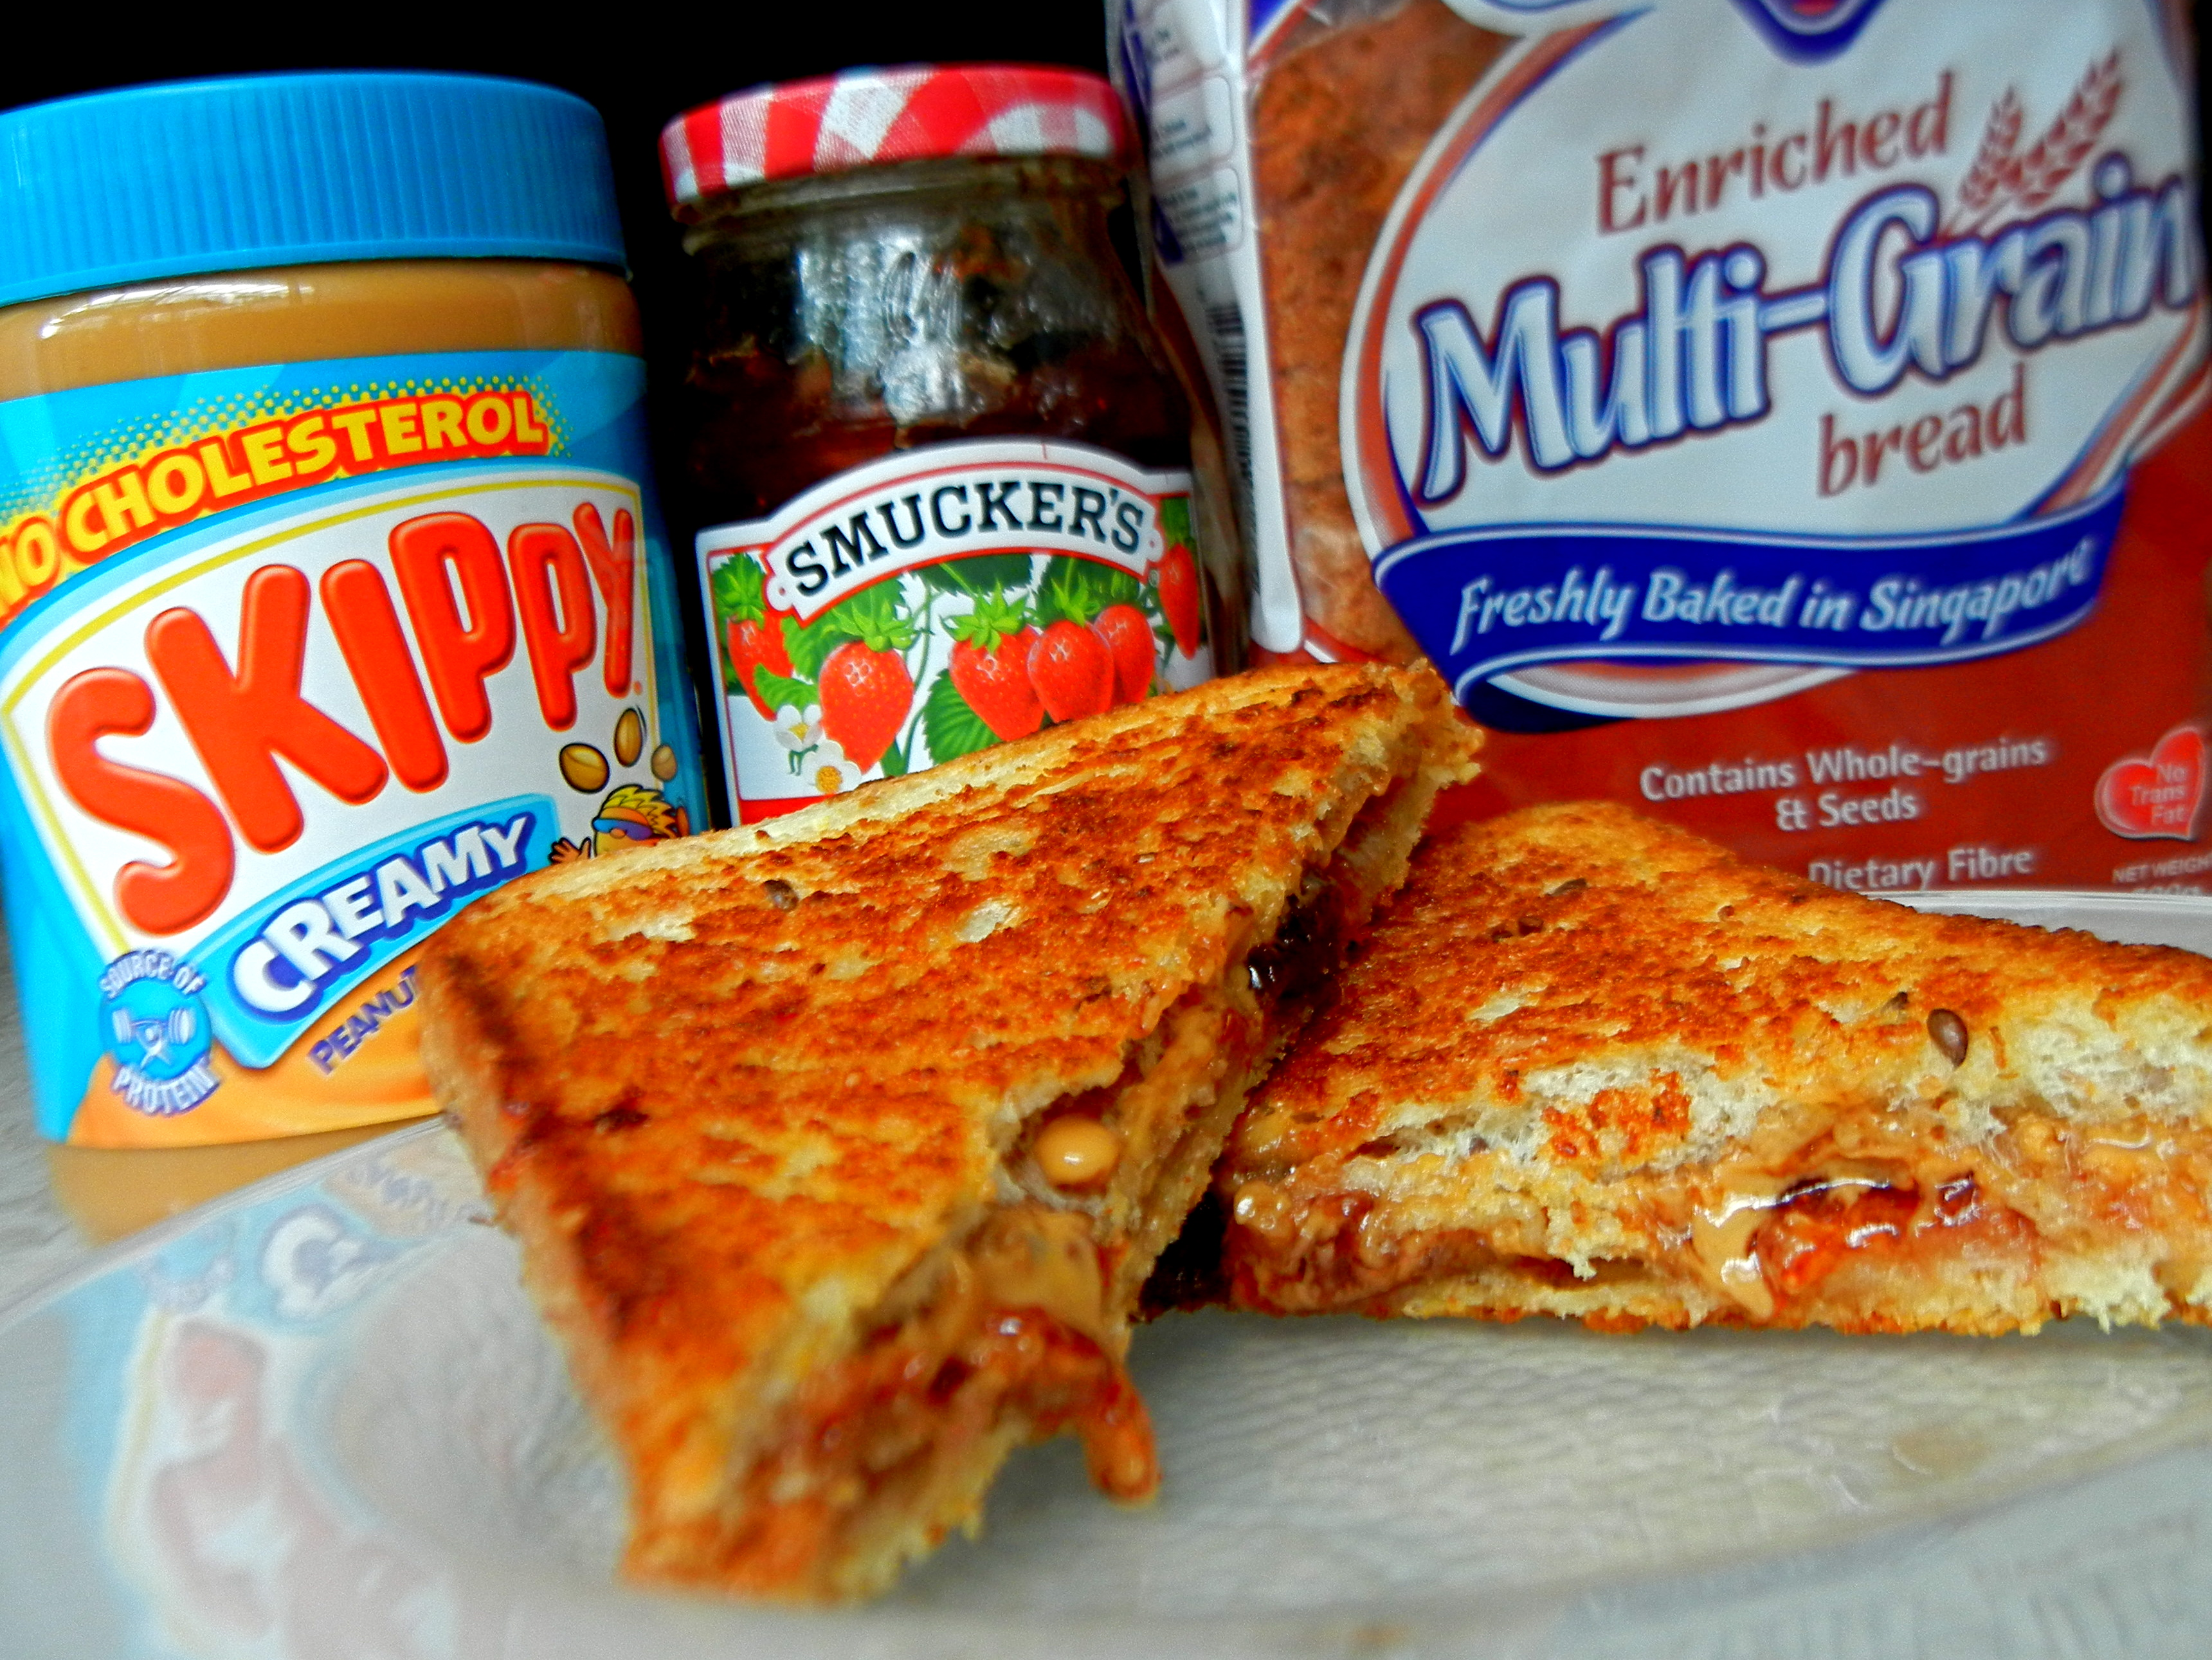 Grilled Peanut Butter and Jelly Sandwiches – The EGG